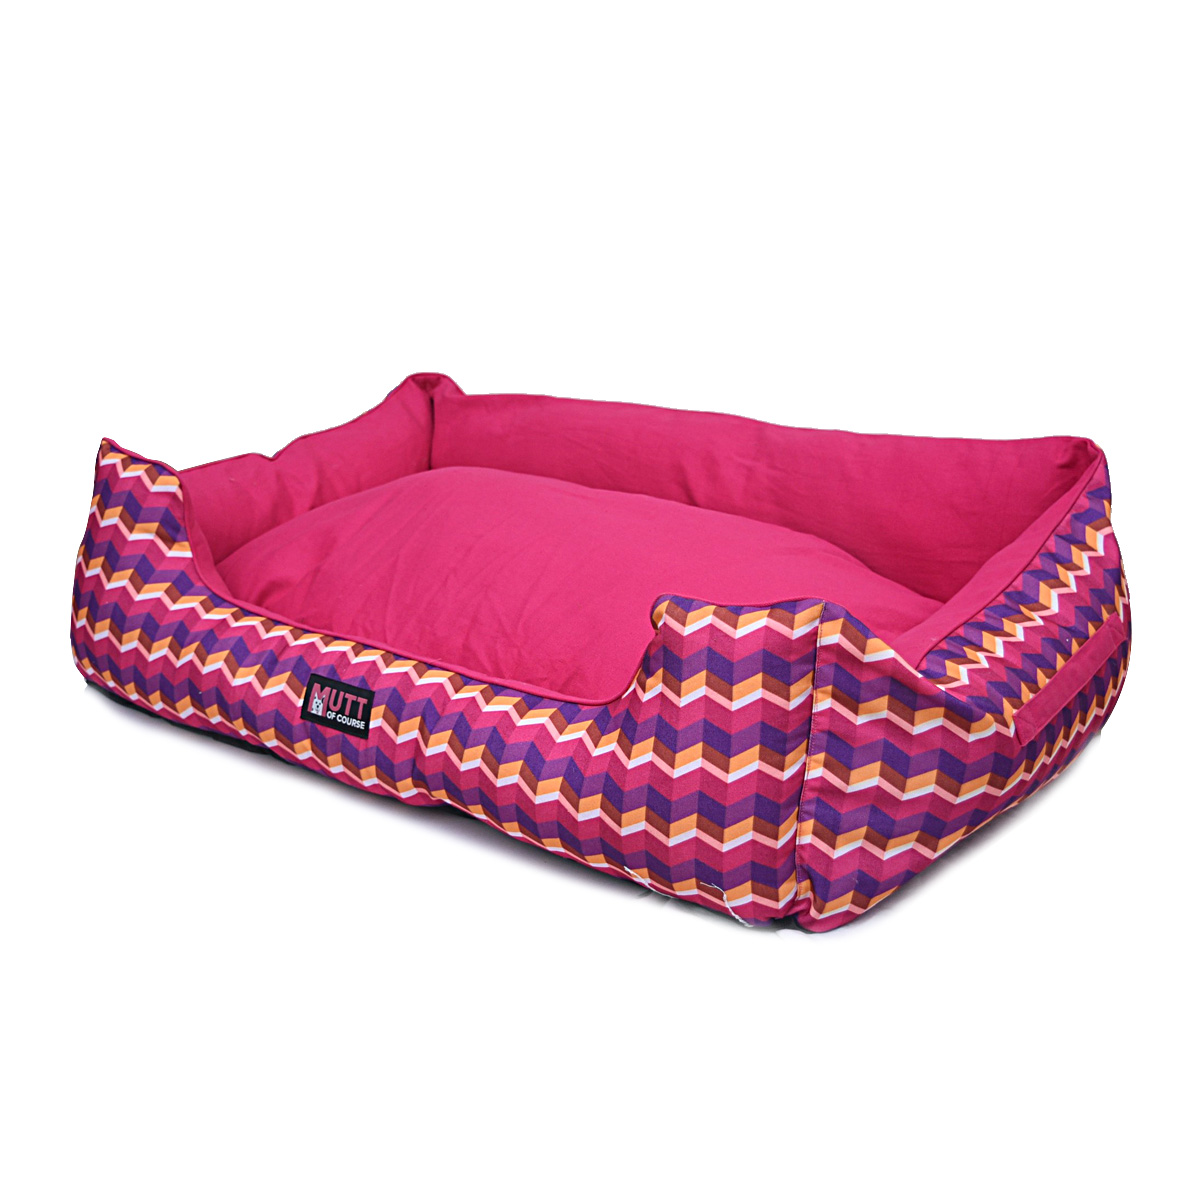 Mutt Of Course Geometrical Dark Lounger Bed - Xlarge